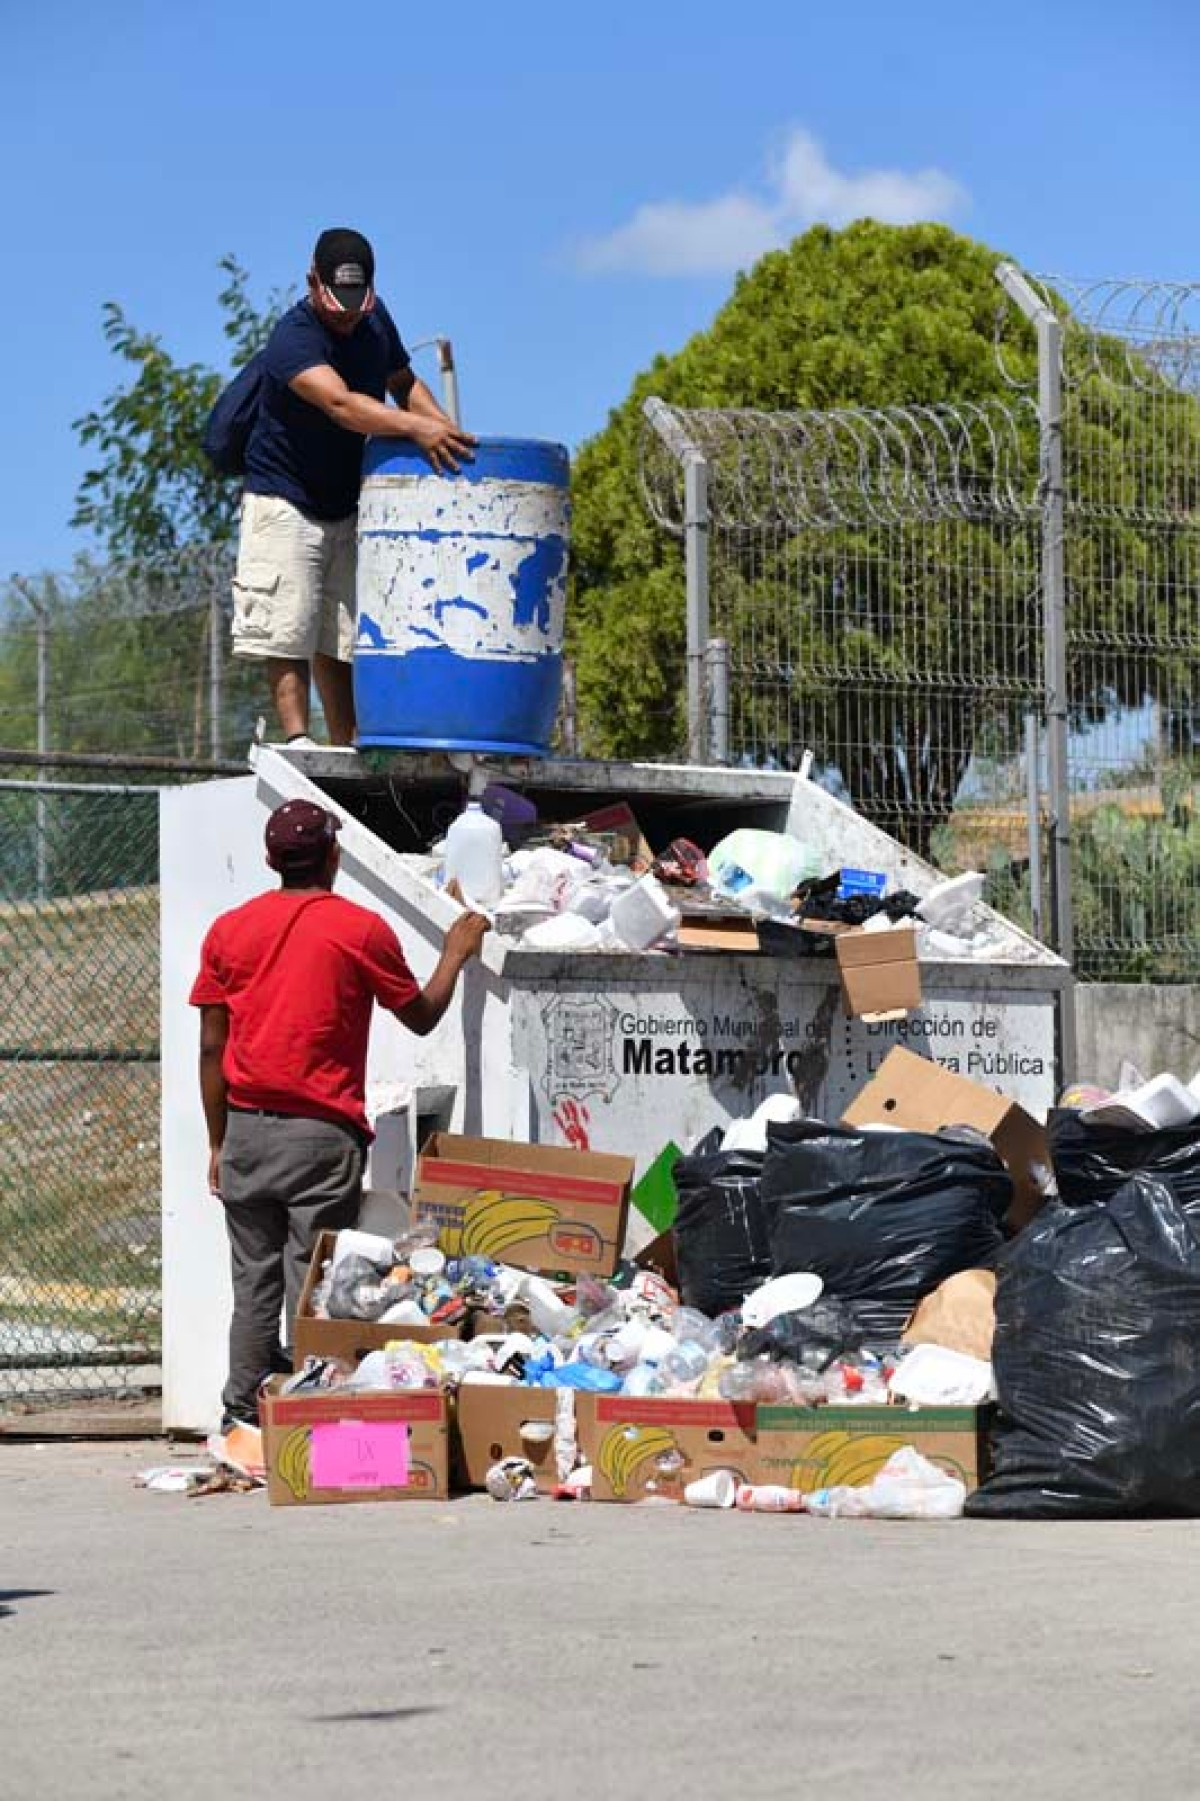 People move trash in Matamoros, Mexico